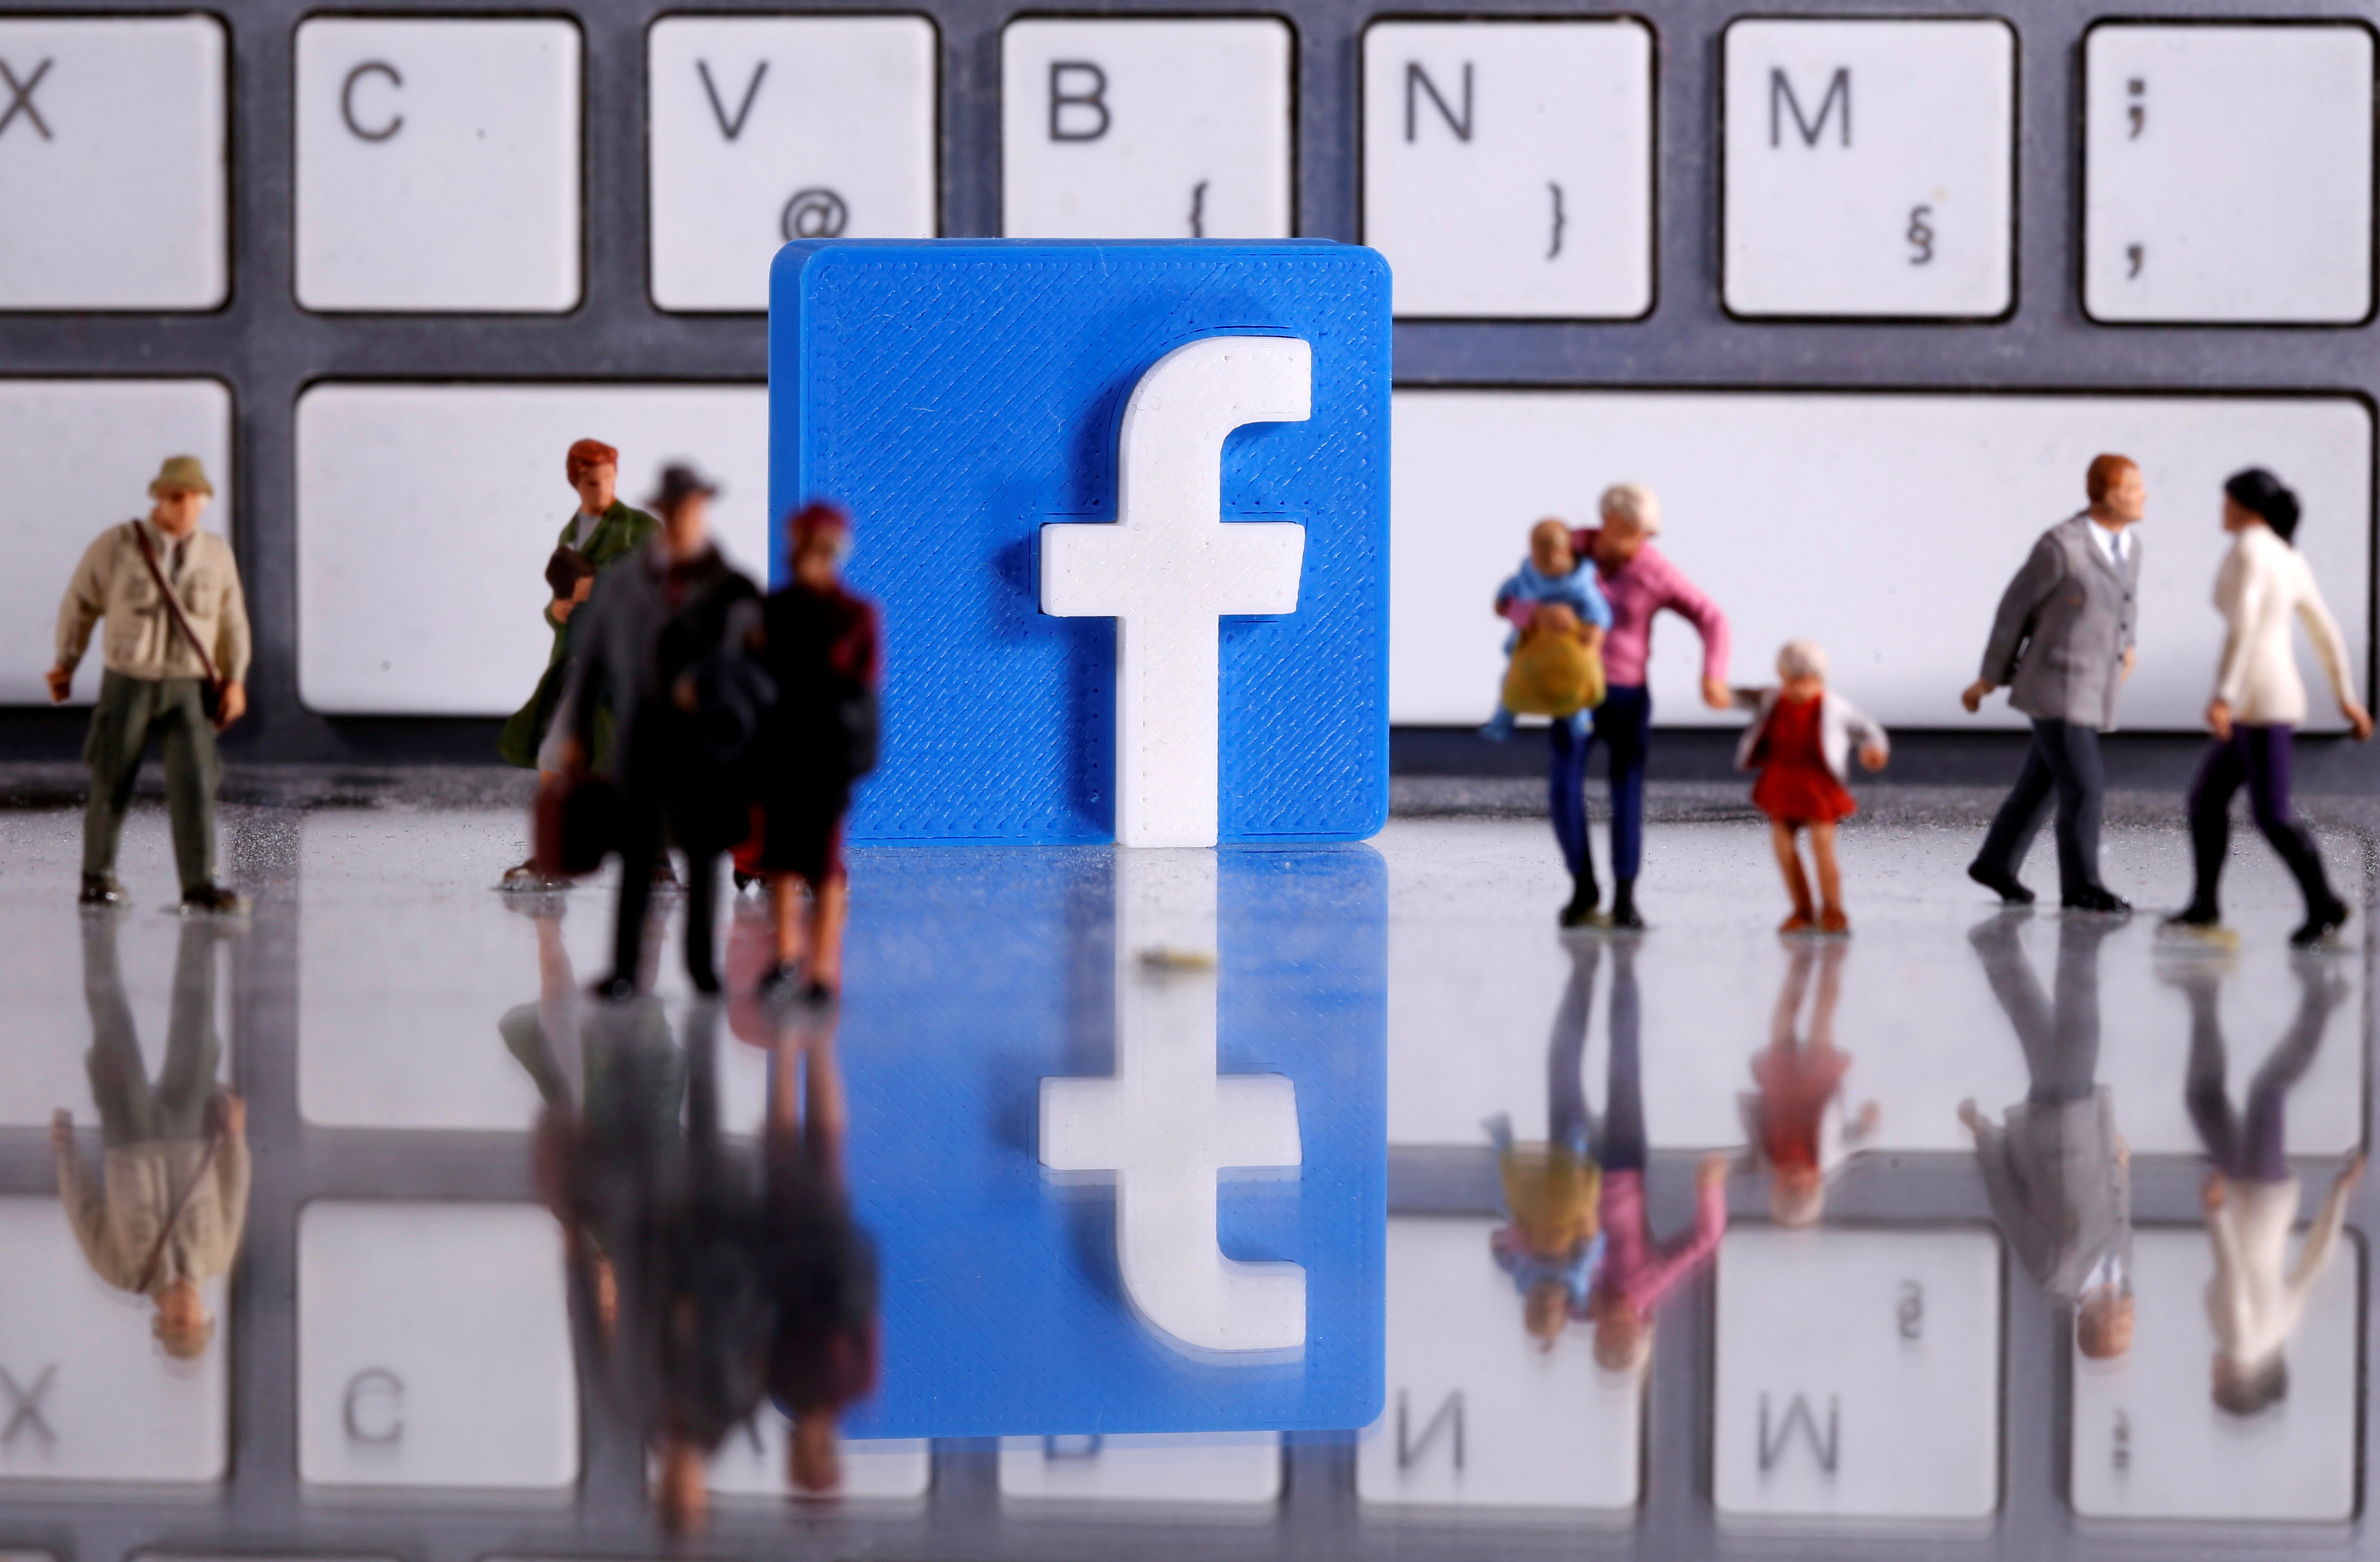 A 3D printed Facebook logo is placed between small toy people figures in front of a keyboard in this illustration taken April 12, 2020. REUTERS/Dado Ruvic/Illustration